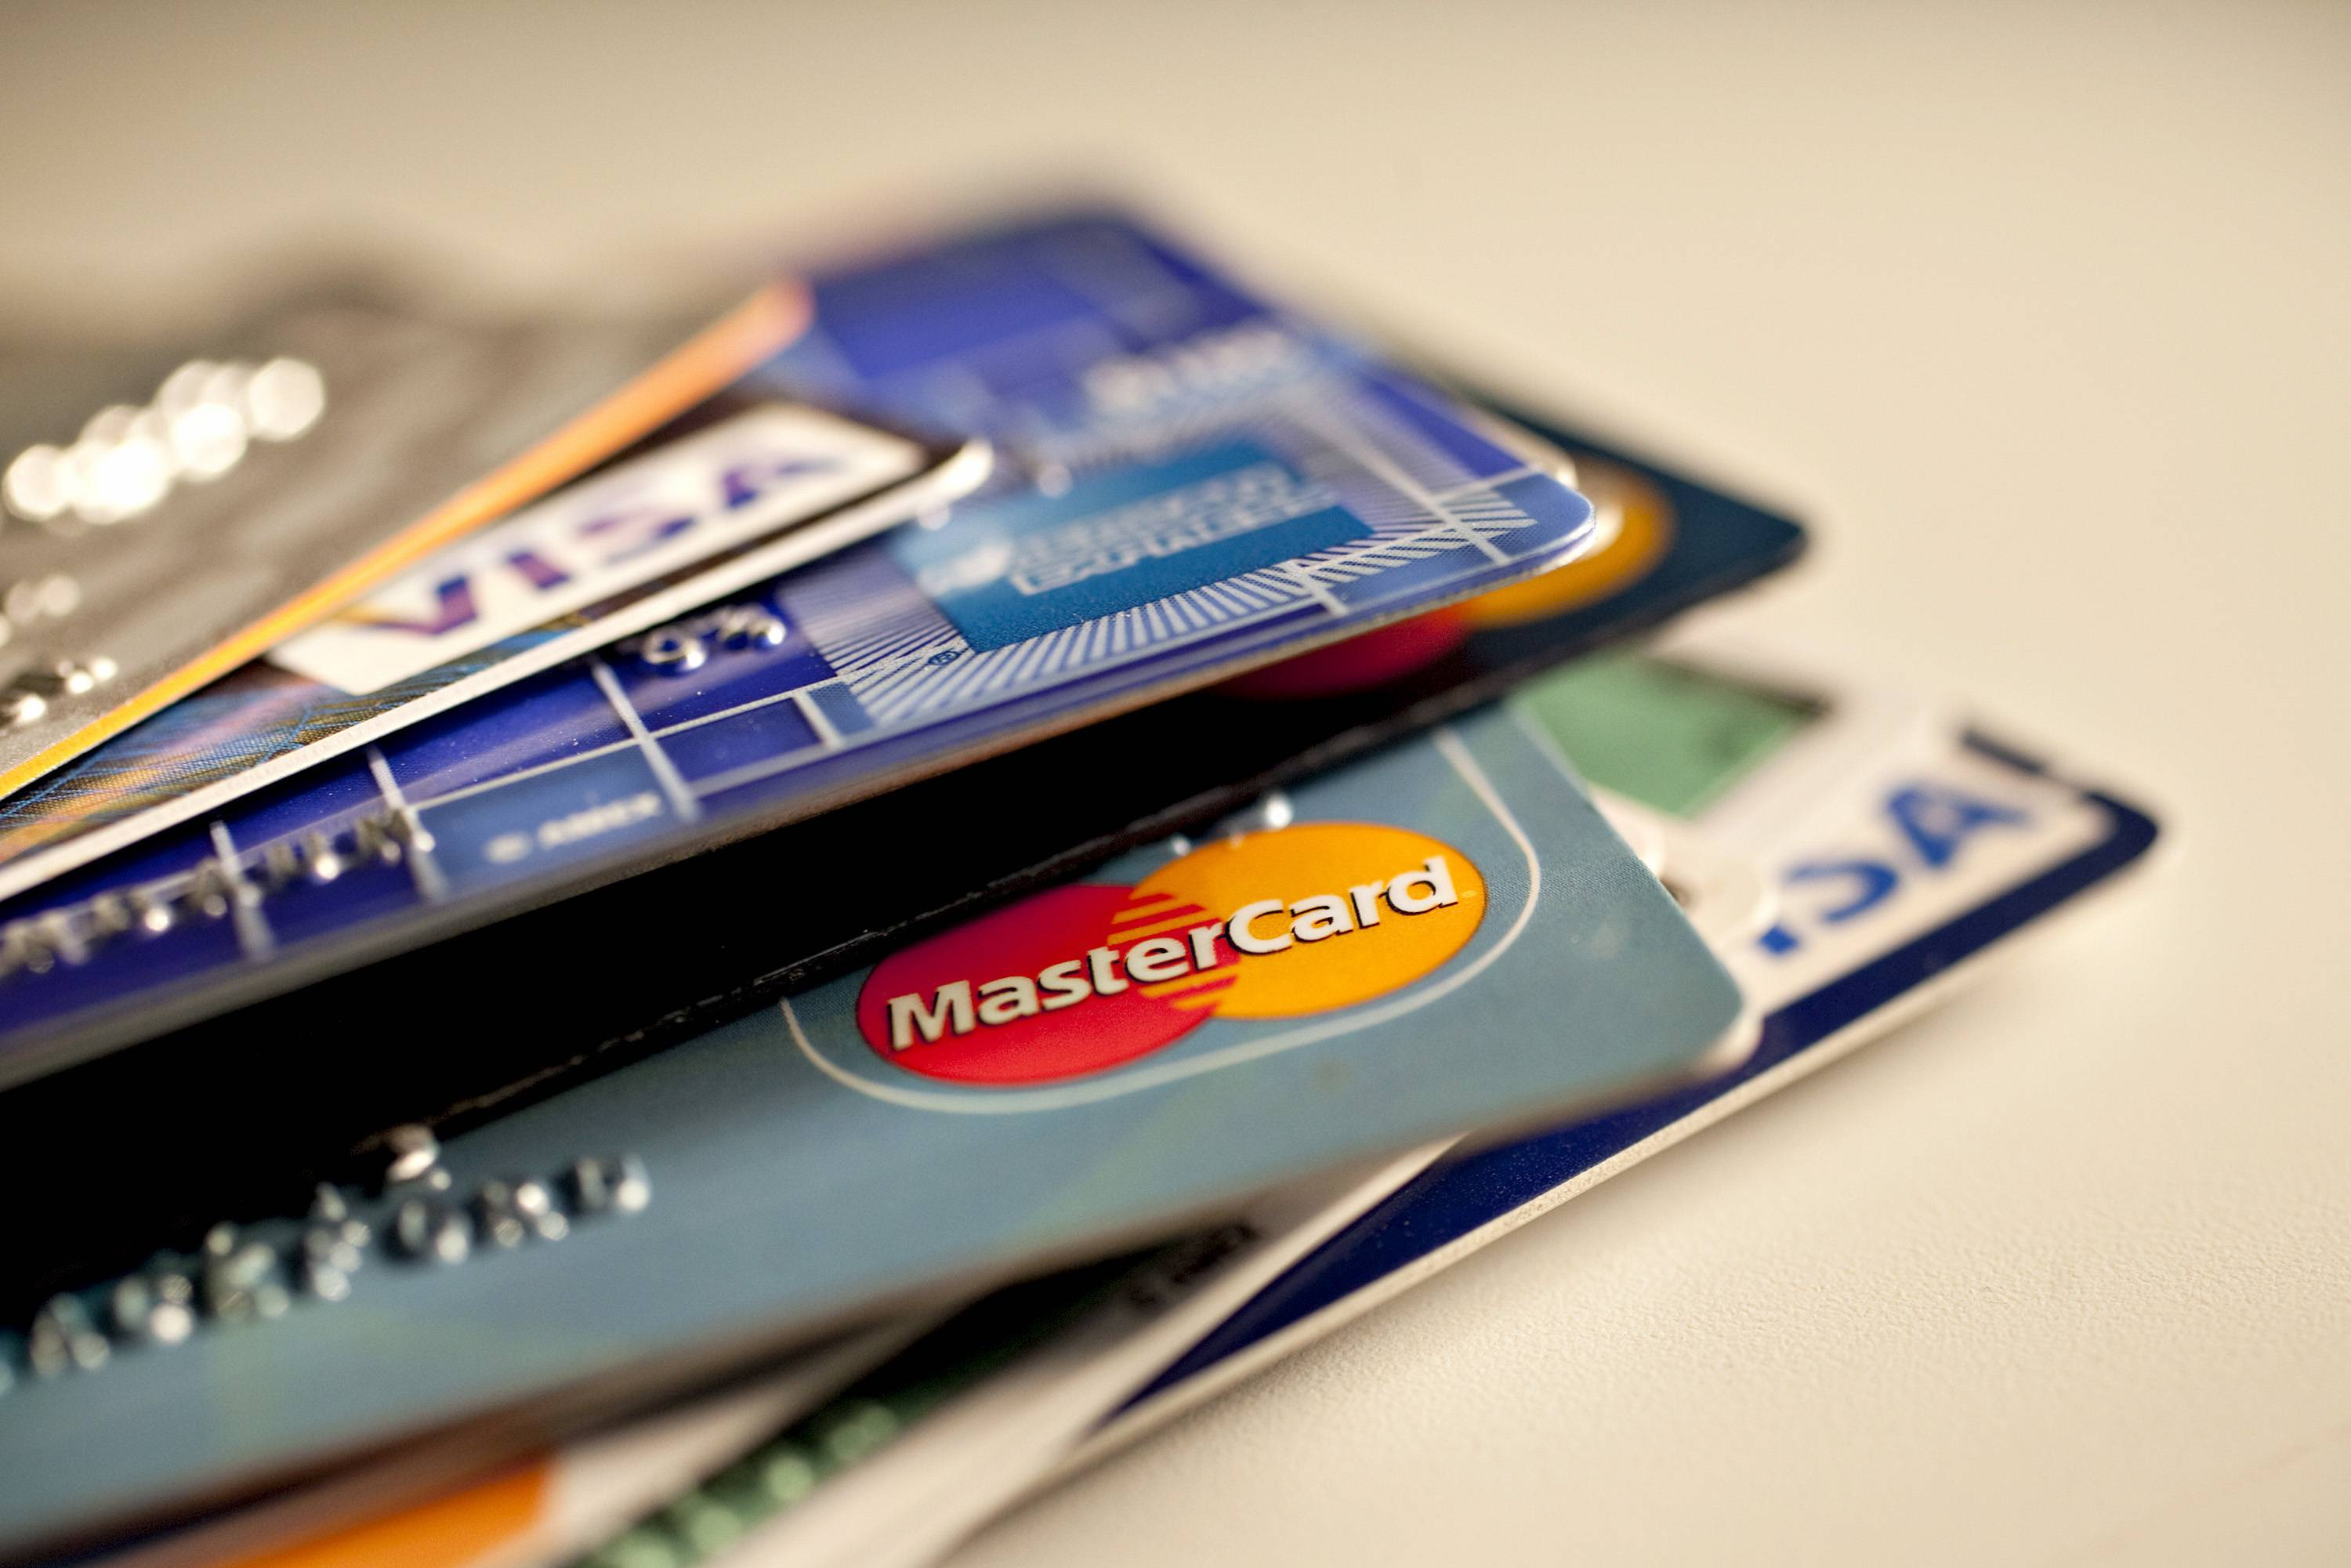 Store credit cards come with an average interest rate of 25 percent.